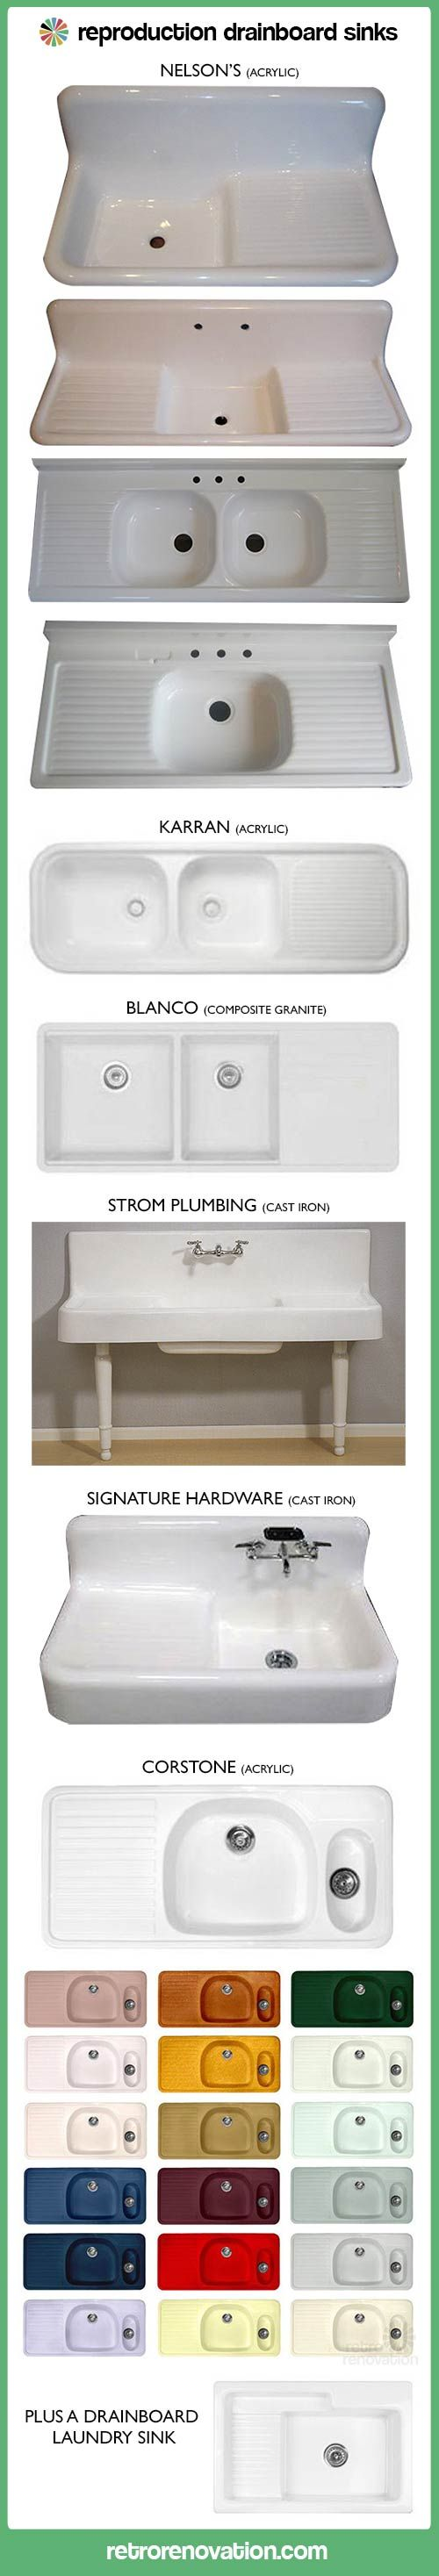 A host of options from for farmhouse kitchen drainboard sinks from Retro Renovation.